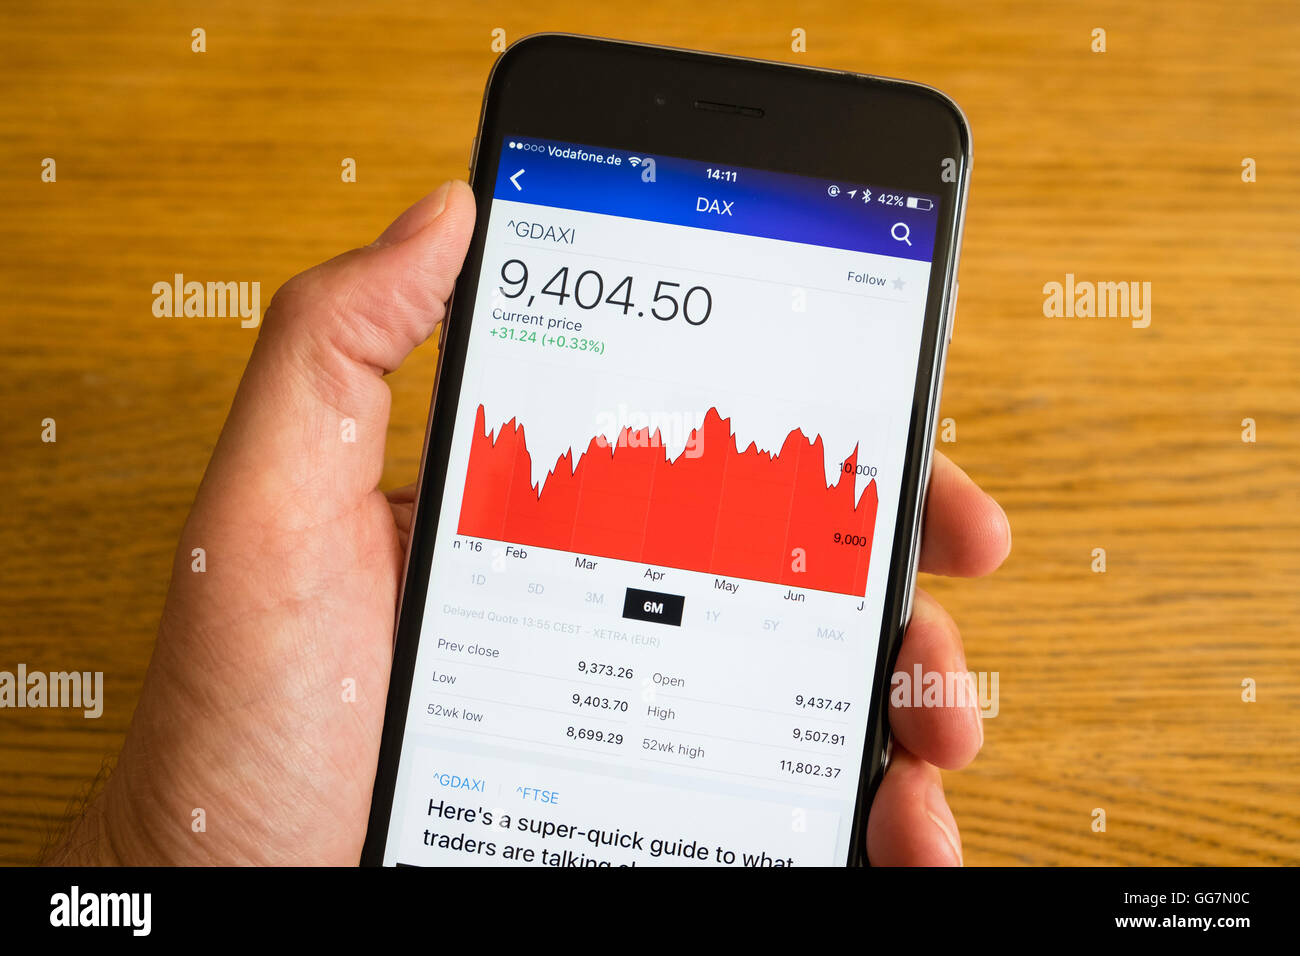 Detail of stock market performance of DAX German stock exchange  on a smart phone - Stock Image